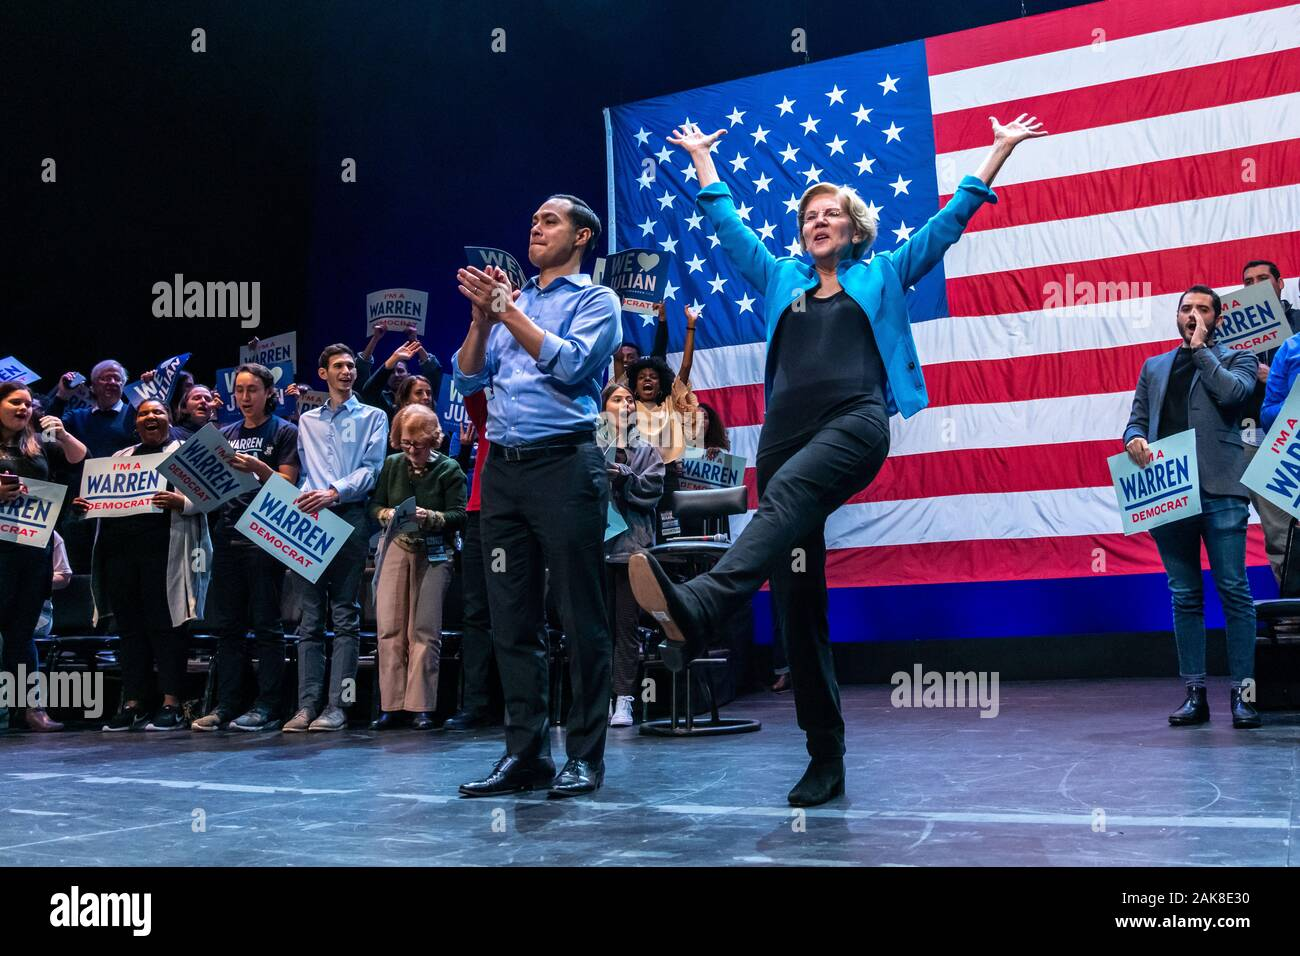 New York, USA,  7 January 2020.  US Senator and Presidential candidate Elizabeth Warren dances to cheering fans as Julian Castro, former secretary of Housing and Urban Development (HUD) applauds at the end of  a campaign rally at Brooklyn's Kings Theatre in New York.  Credit: Enrique Shore/Alamy Live News Stock Photo